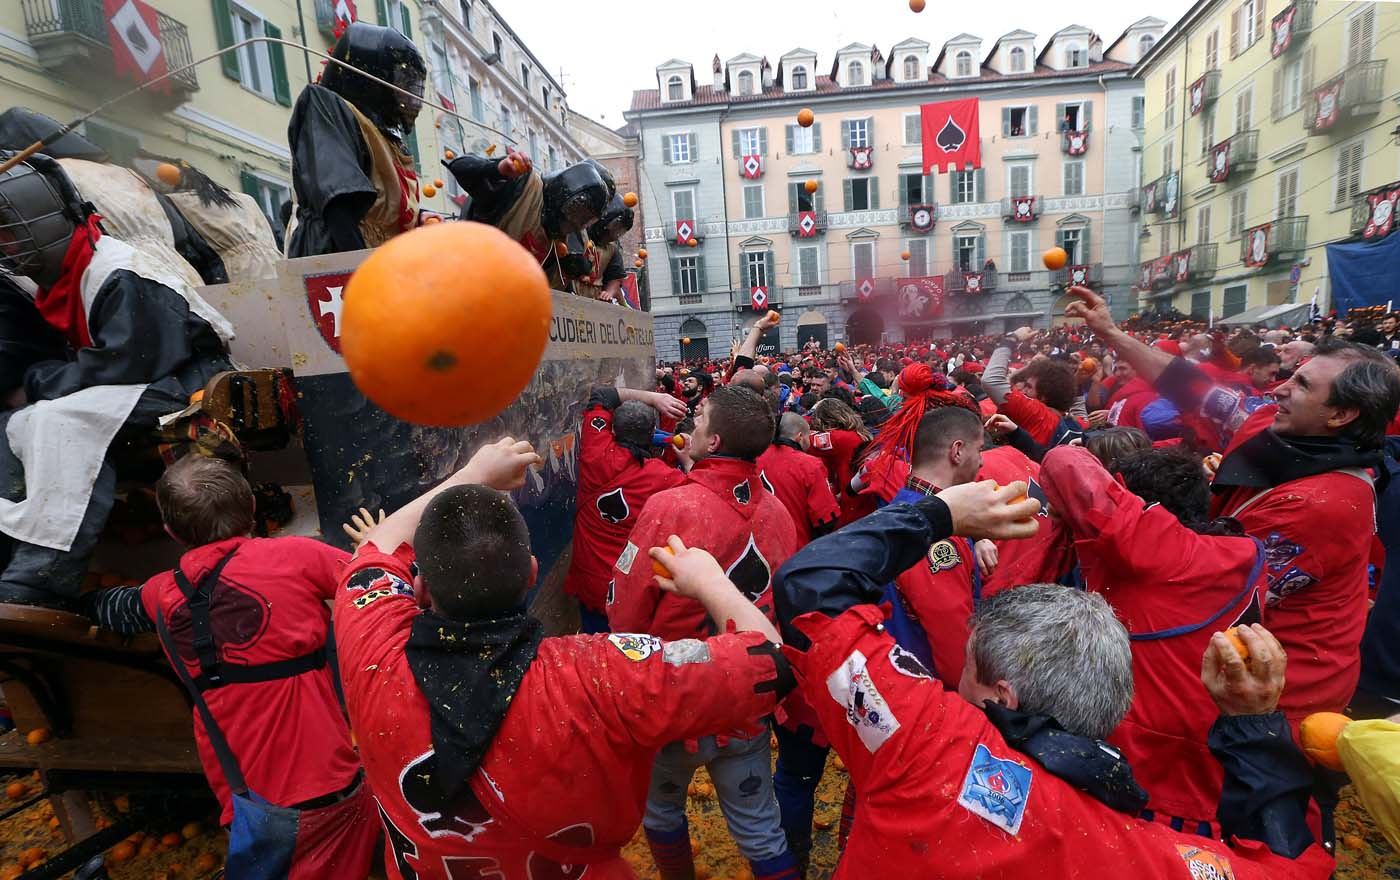 Members of rival teams fight during an annual carnival orange battle in the northern Italian town of Ivrea February 26, 2017. REUTERS/Stefano Rellandini